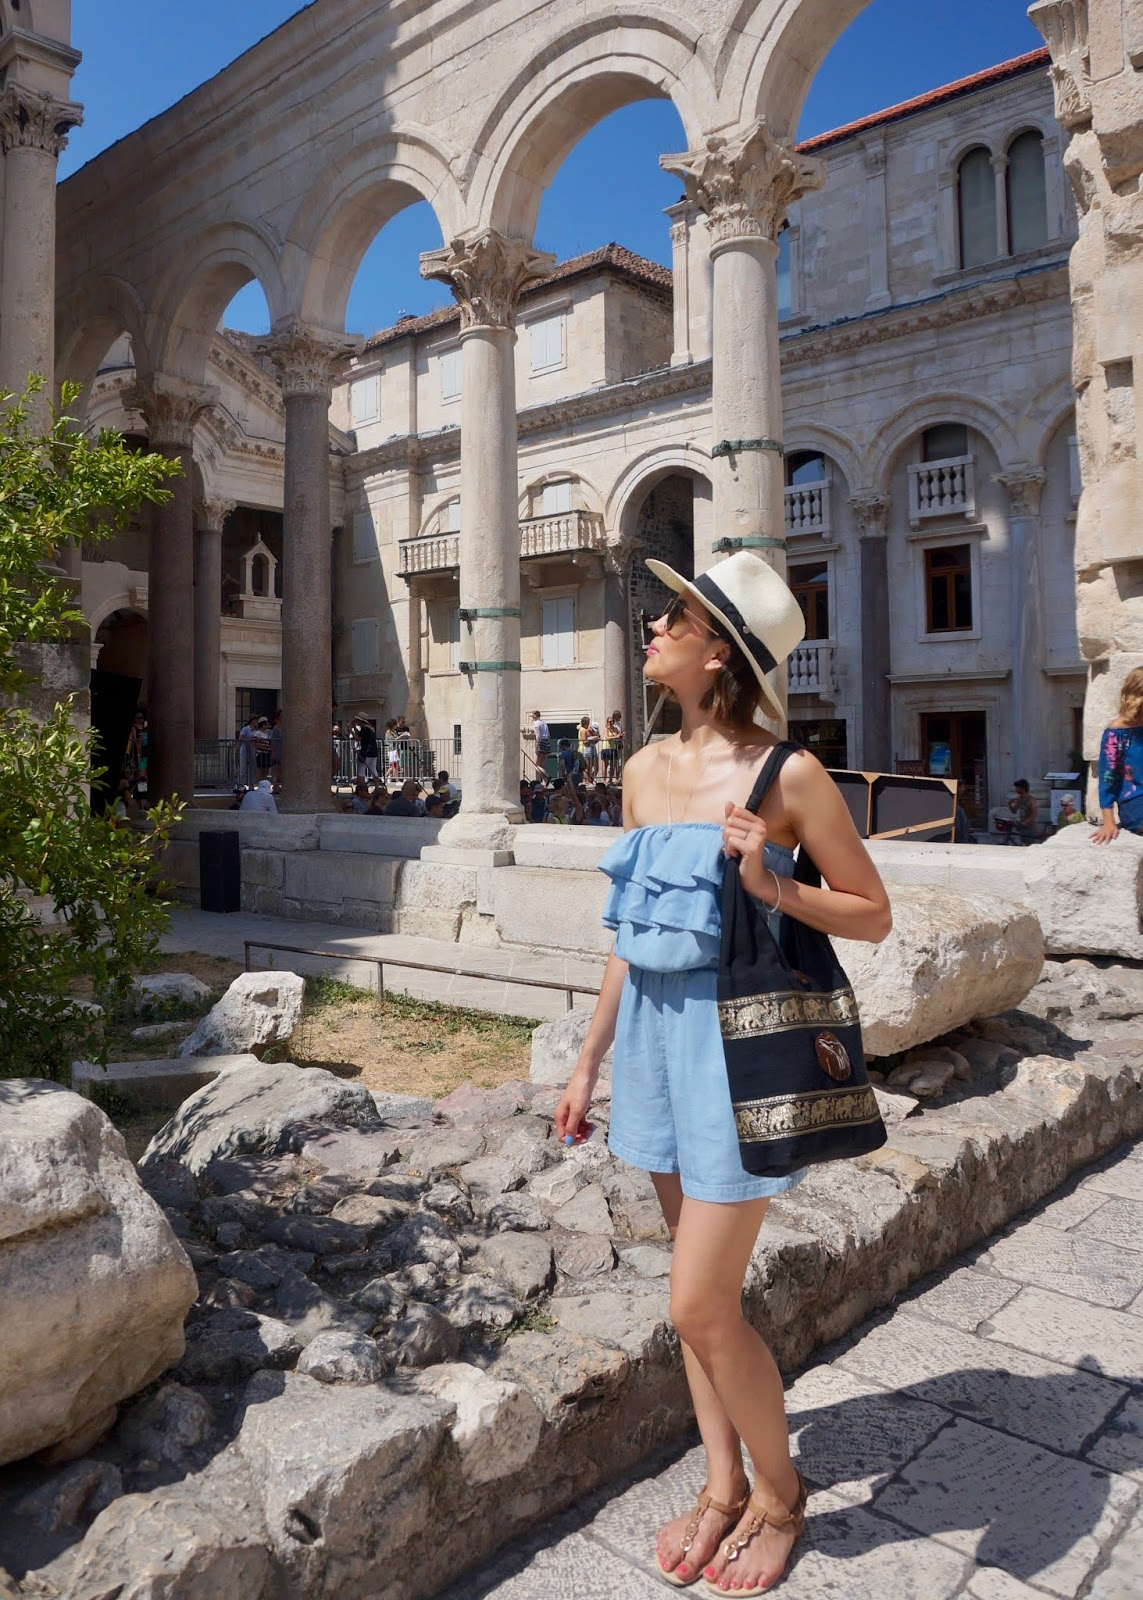 7 THINGS TO SEE & DO IN SPLIT, CROATIA